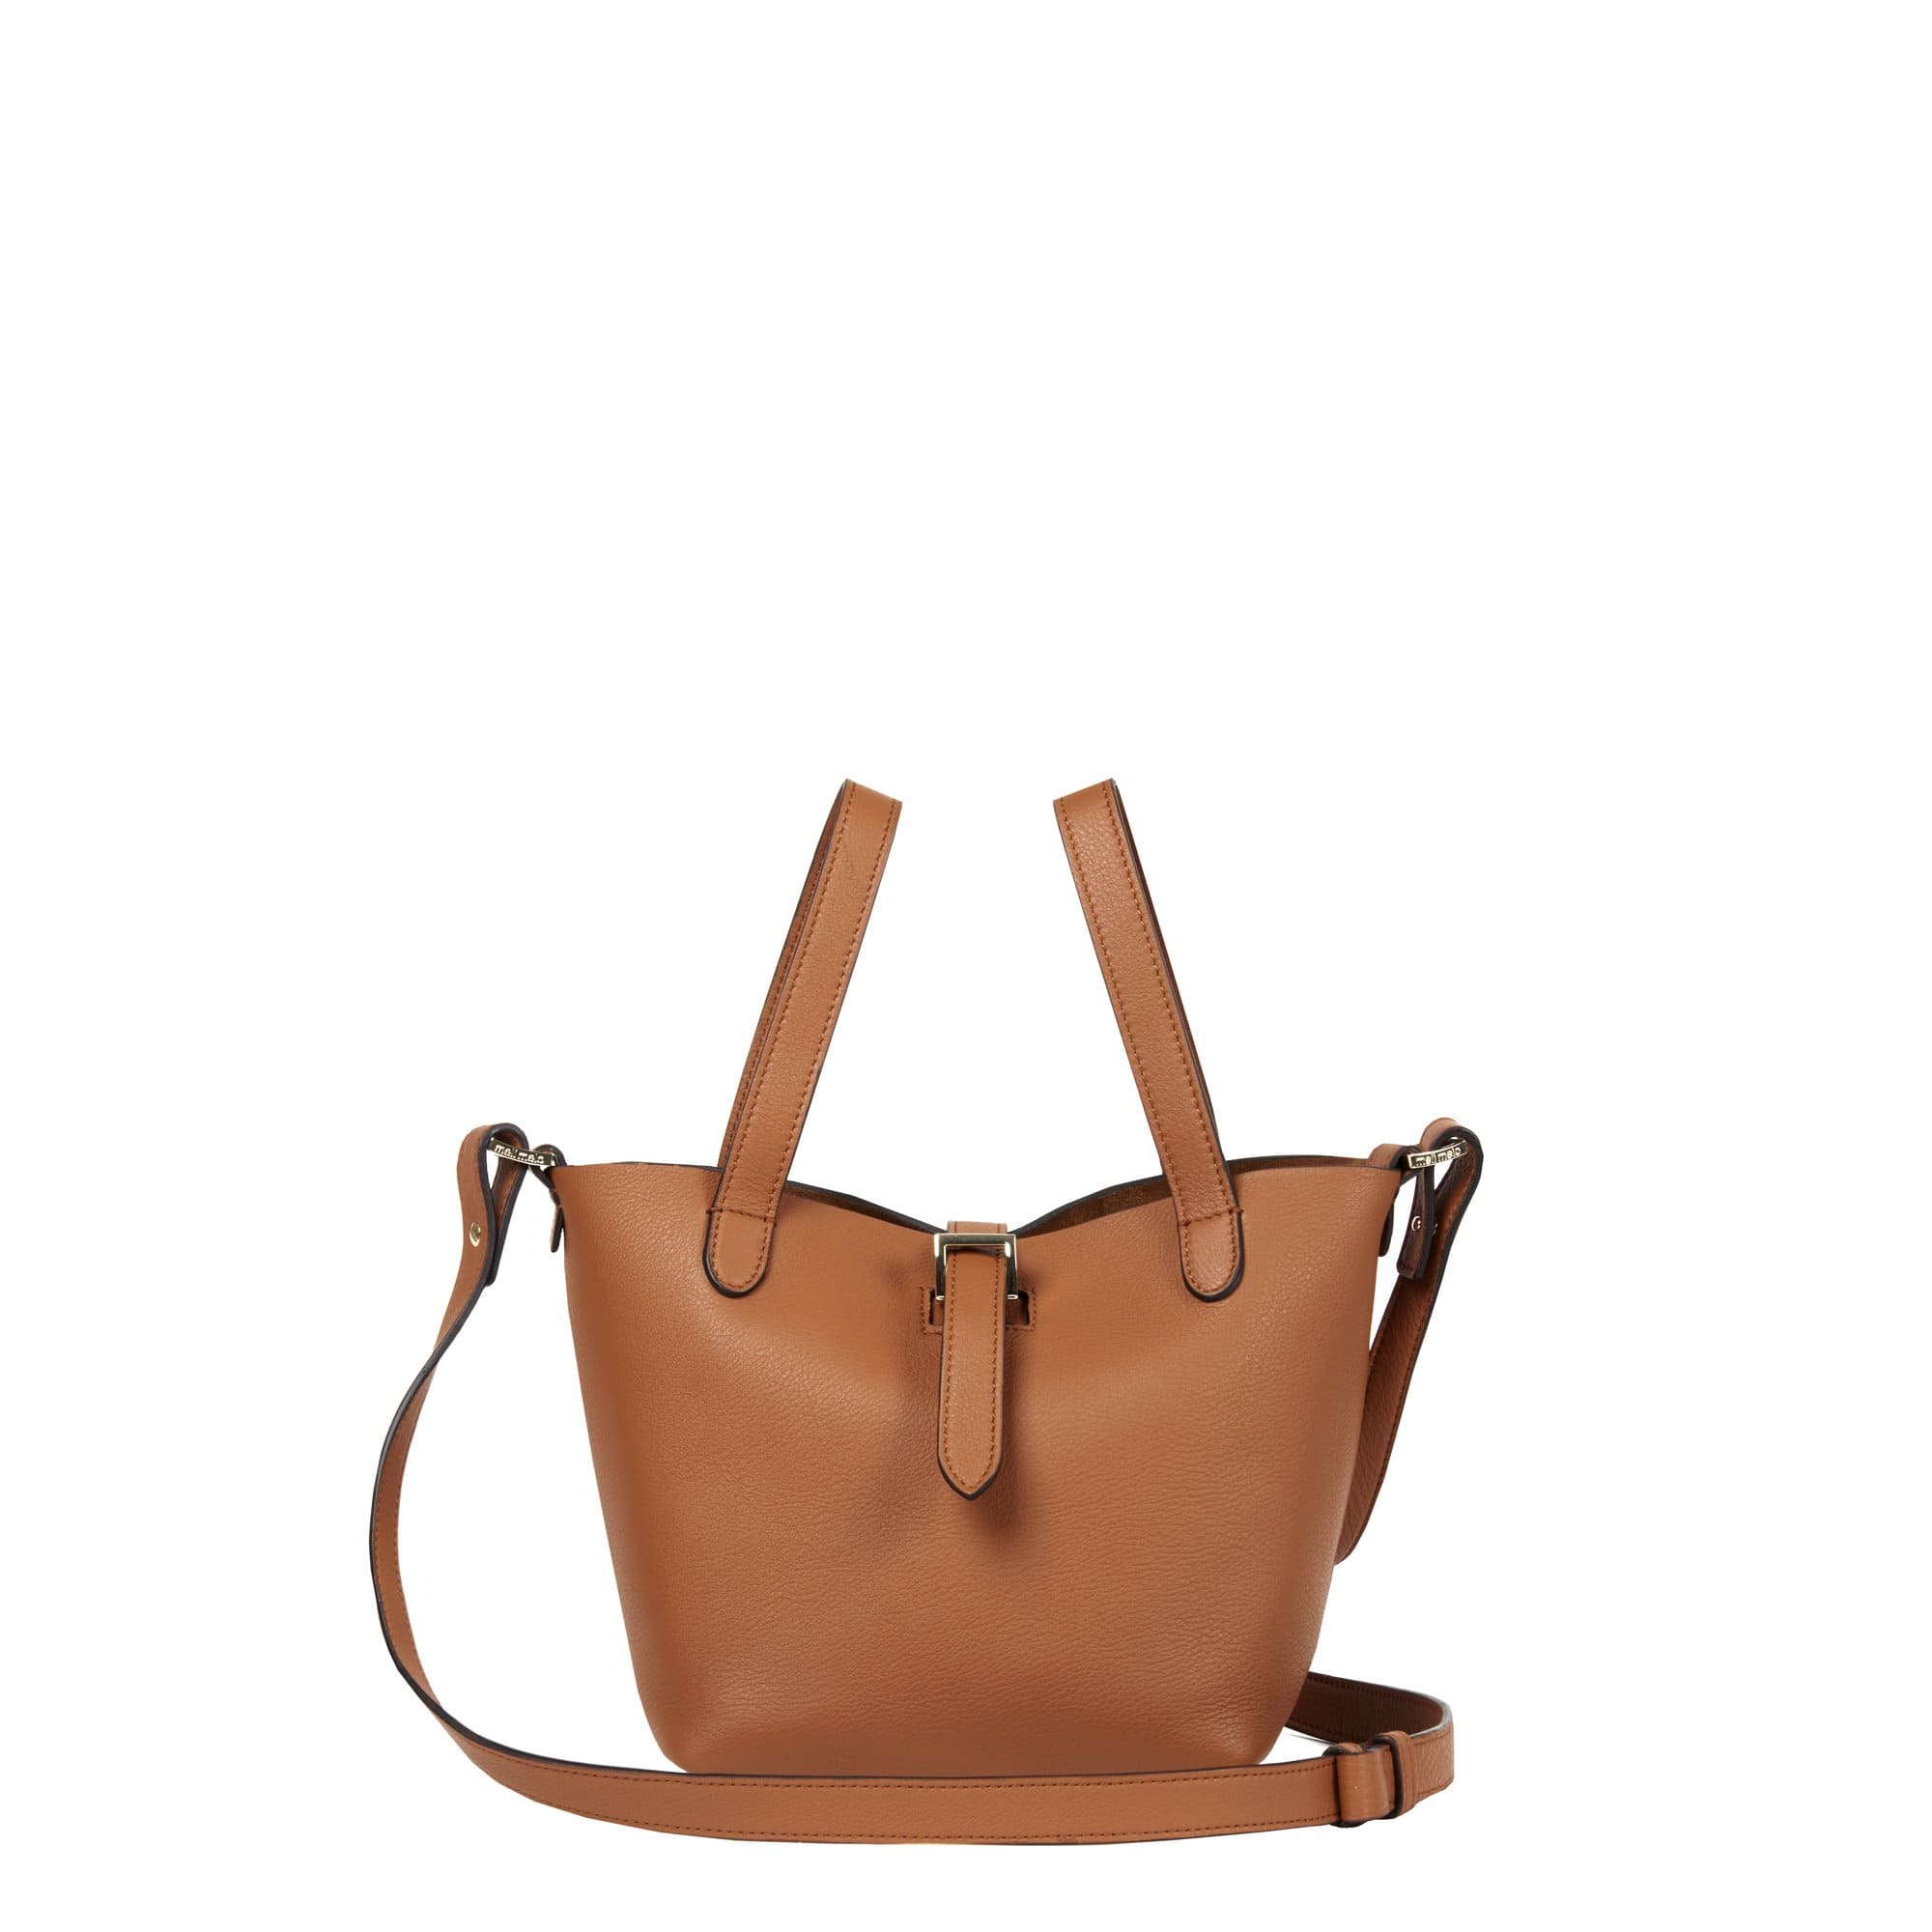 Thela Mini Shopper Tan Brown Leather Cross Body Bag for Women - meli melo Official